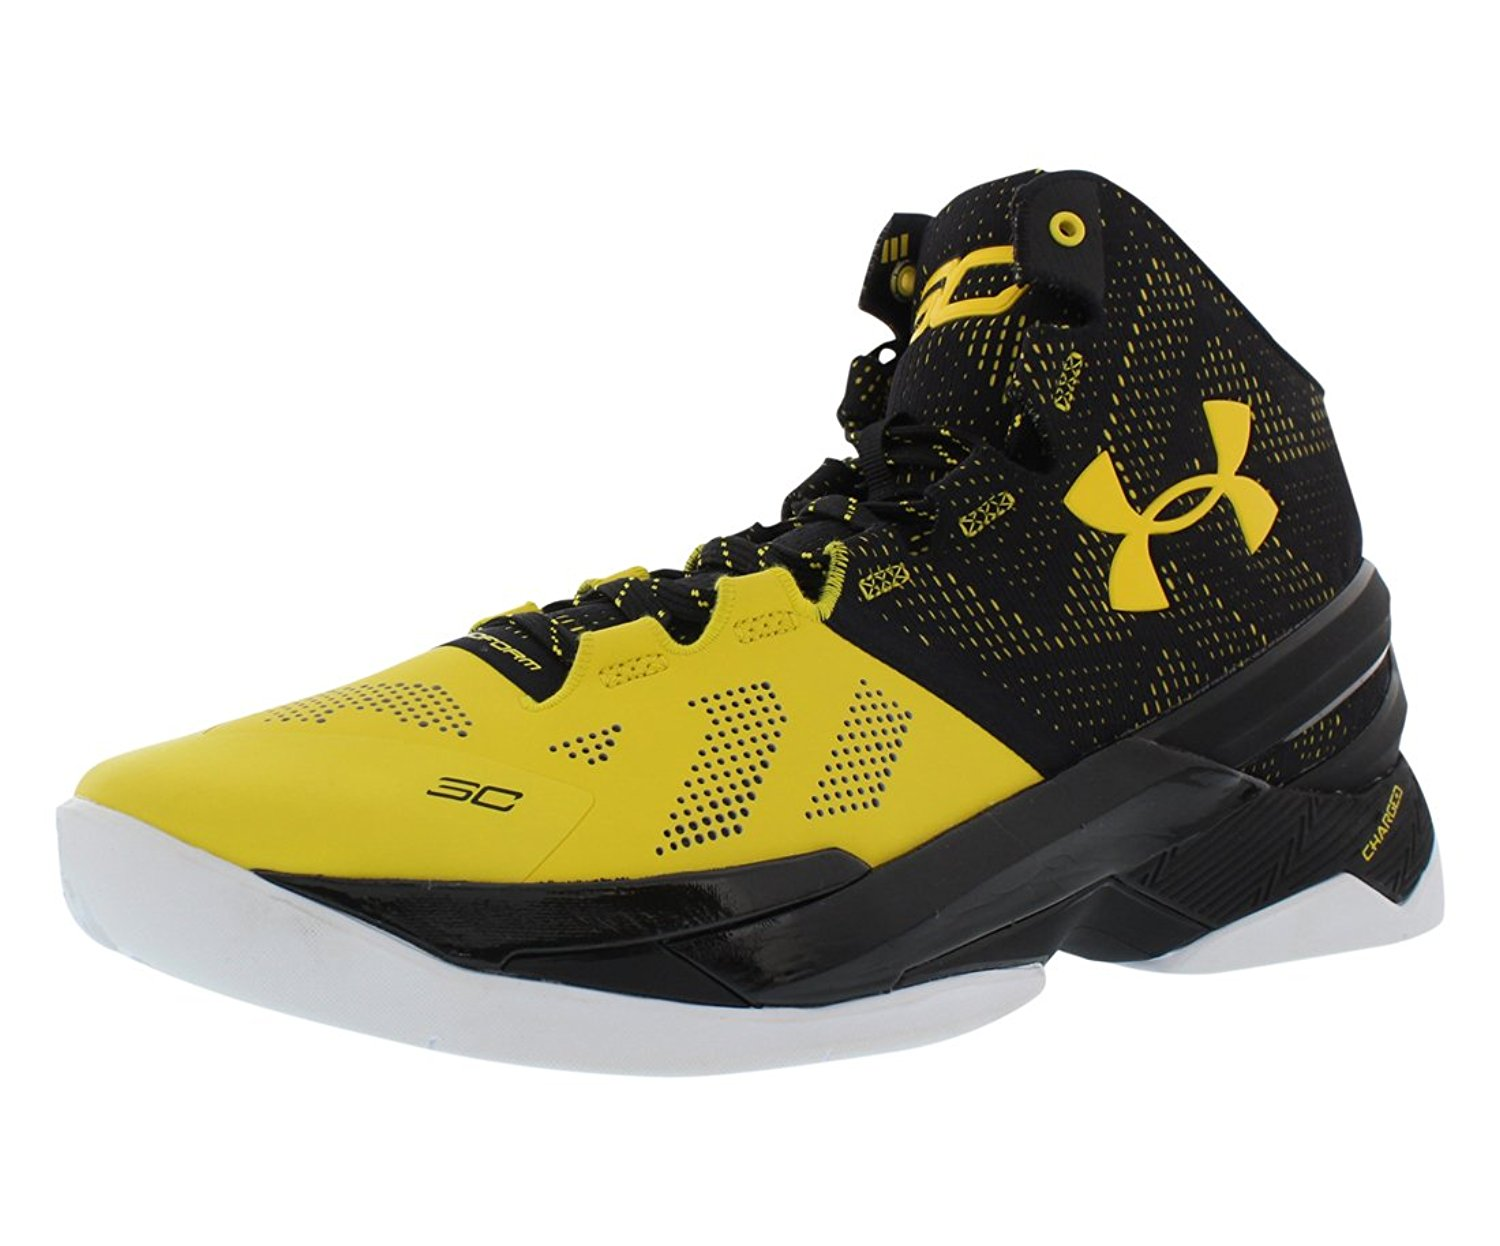 sports shoes 01984 30753 Get Quotations · Under Armour Curry 2 Basketball Men s Shoes Size 13